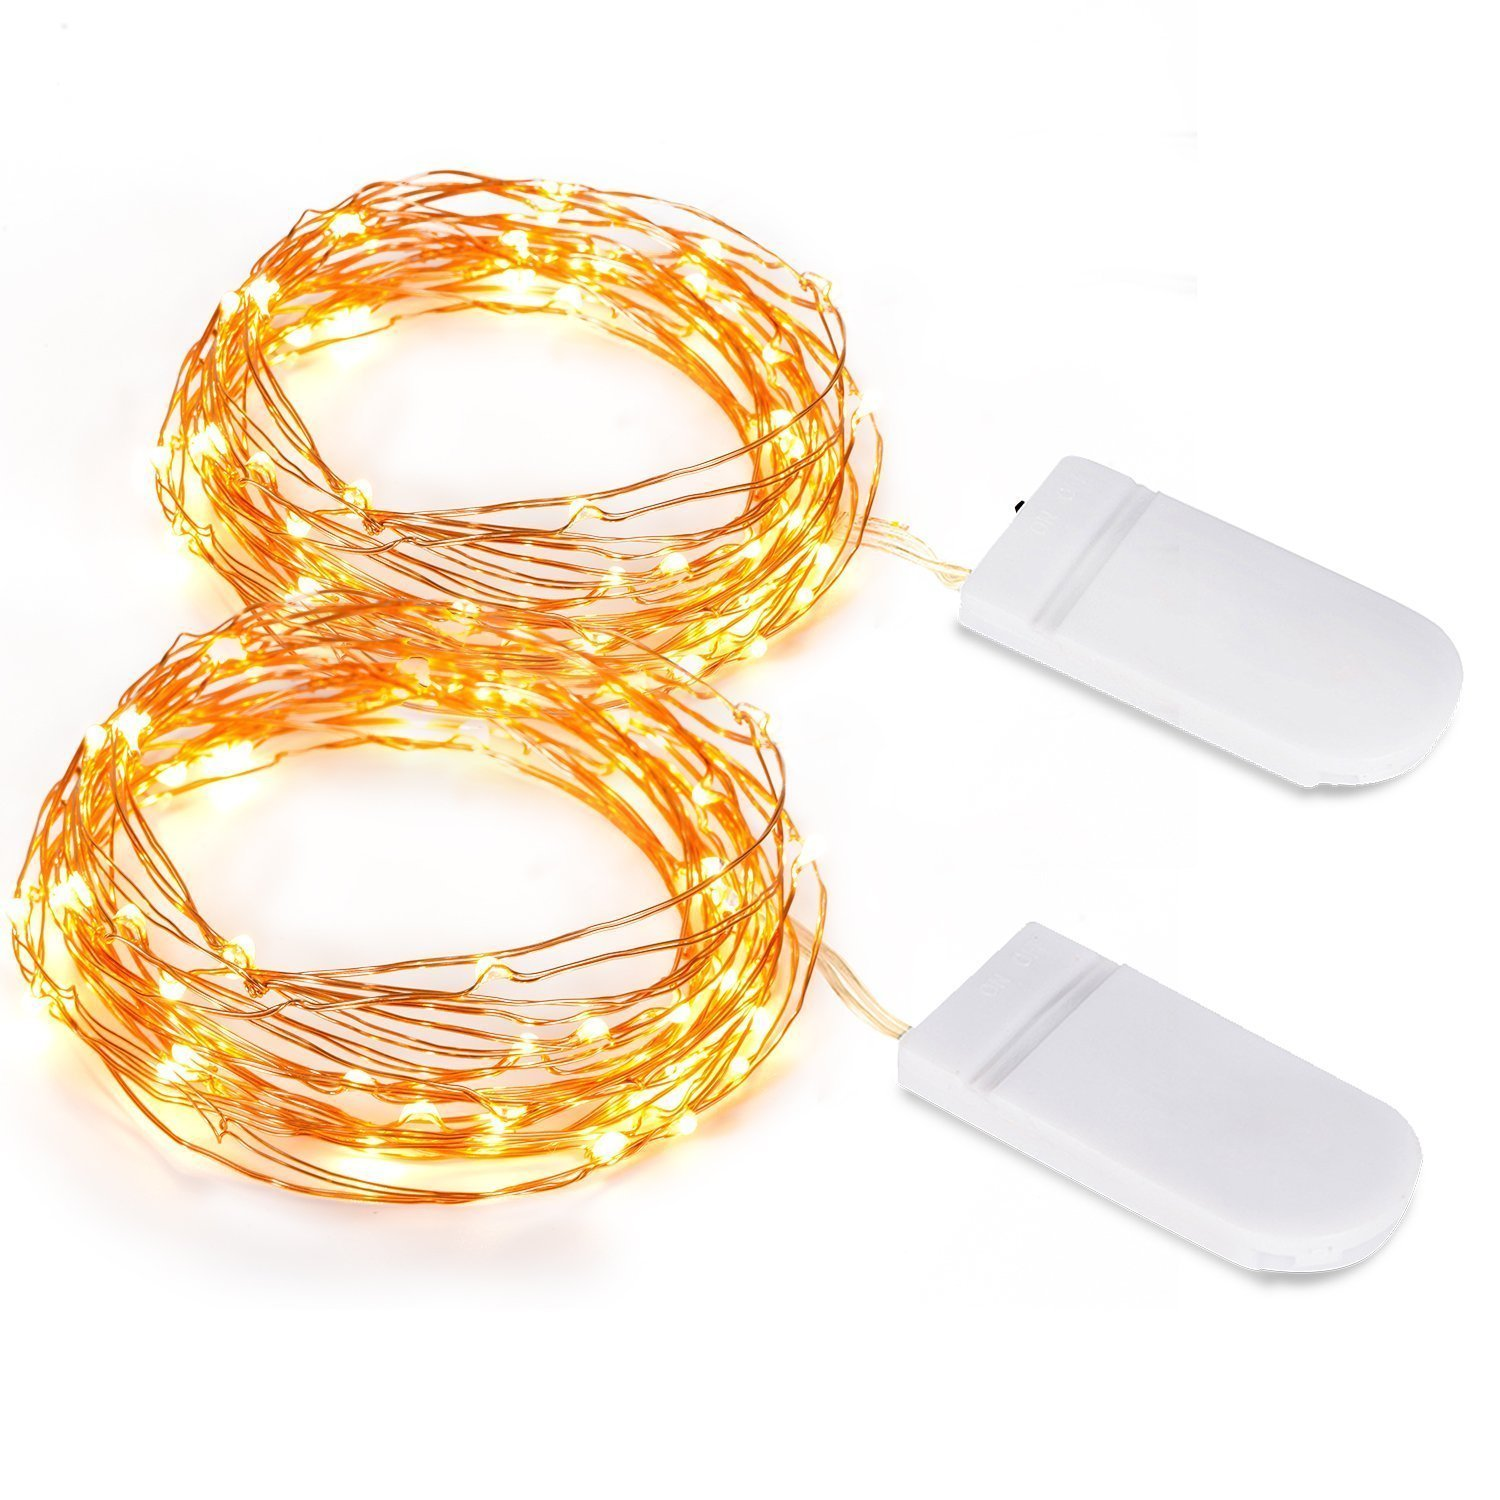 Amazon.com: Battery Operated Christmas String Light, Kohree 2 Pack ...